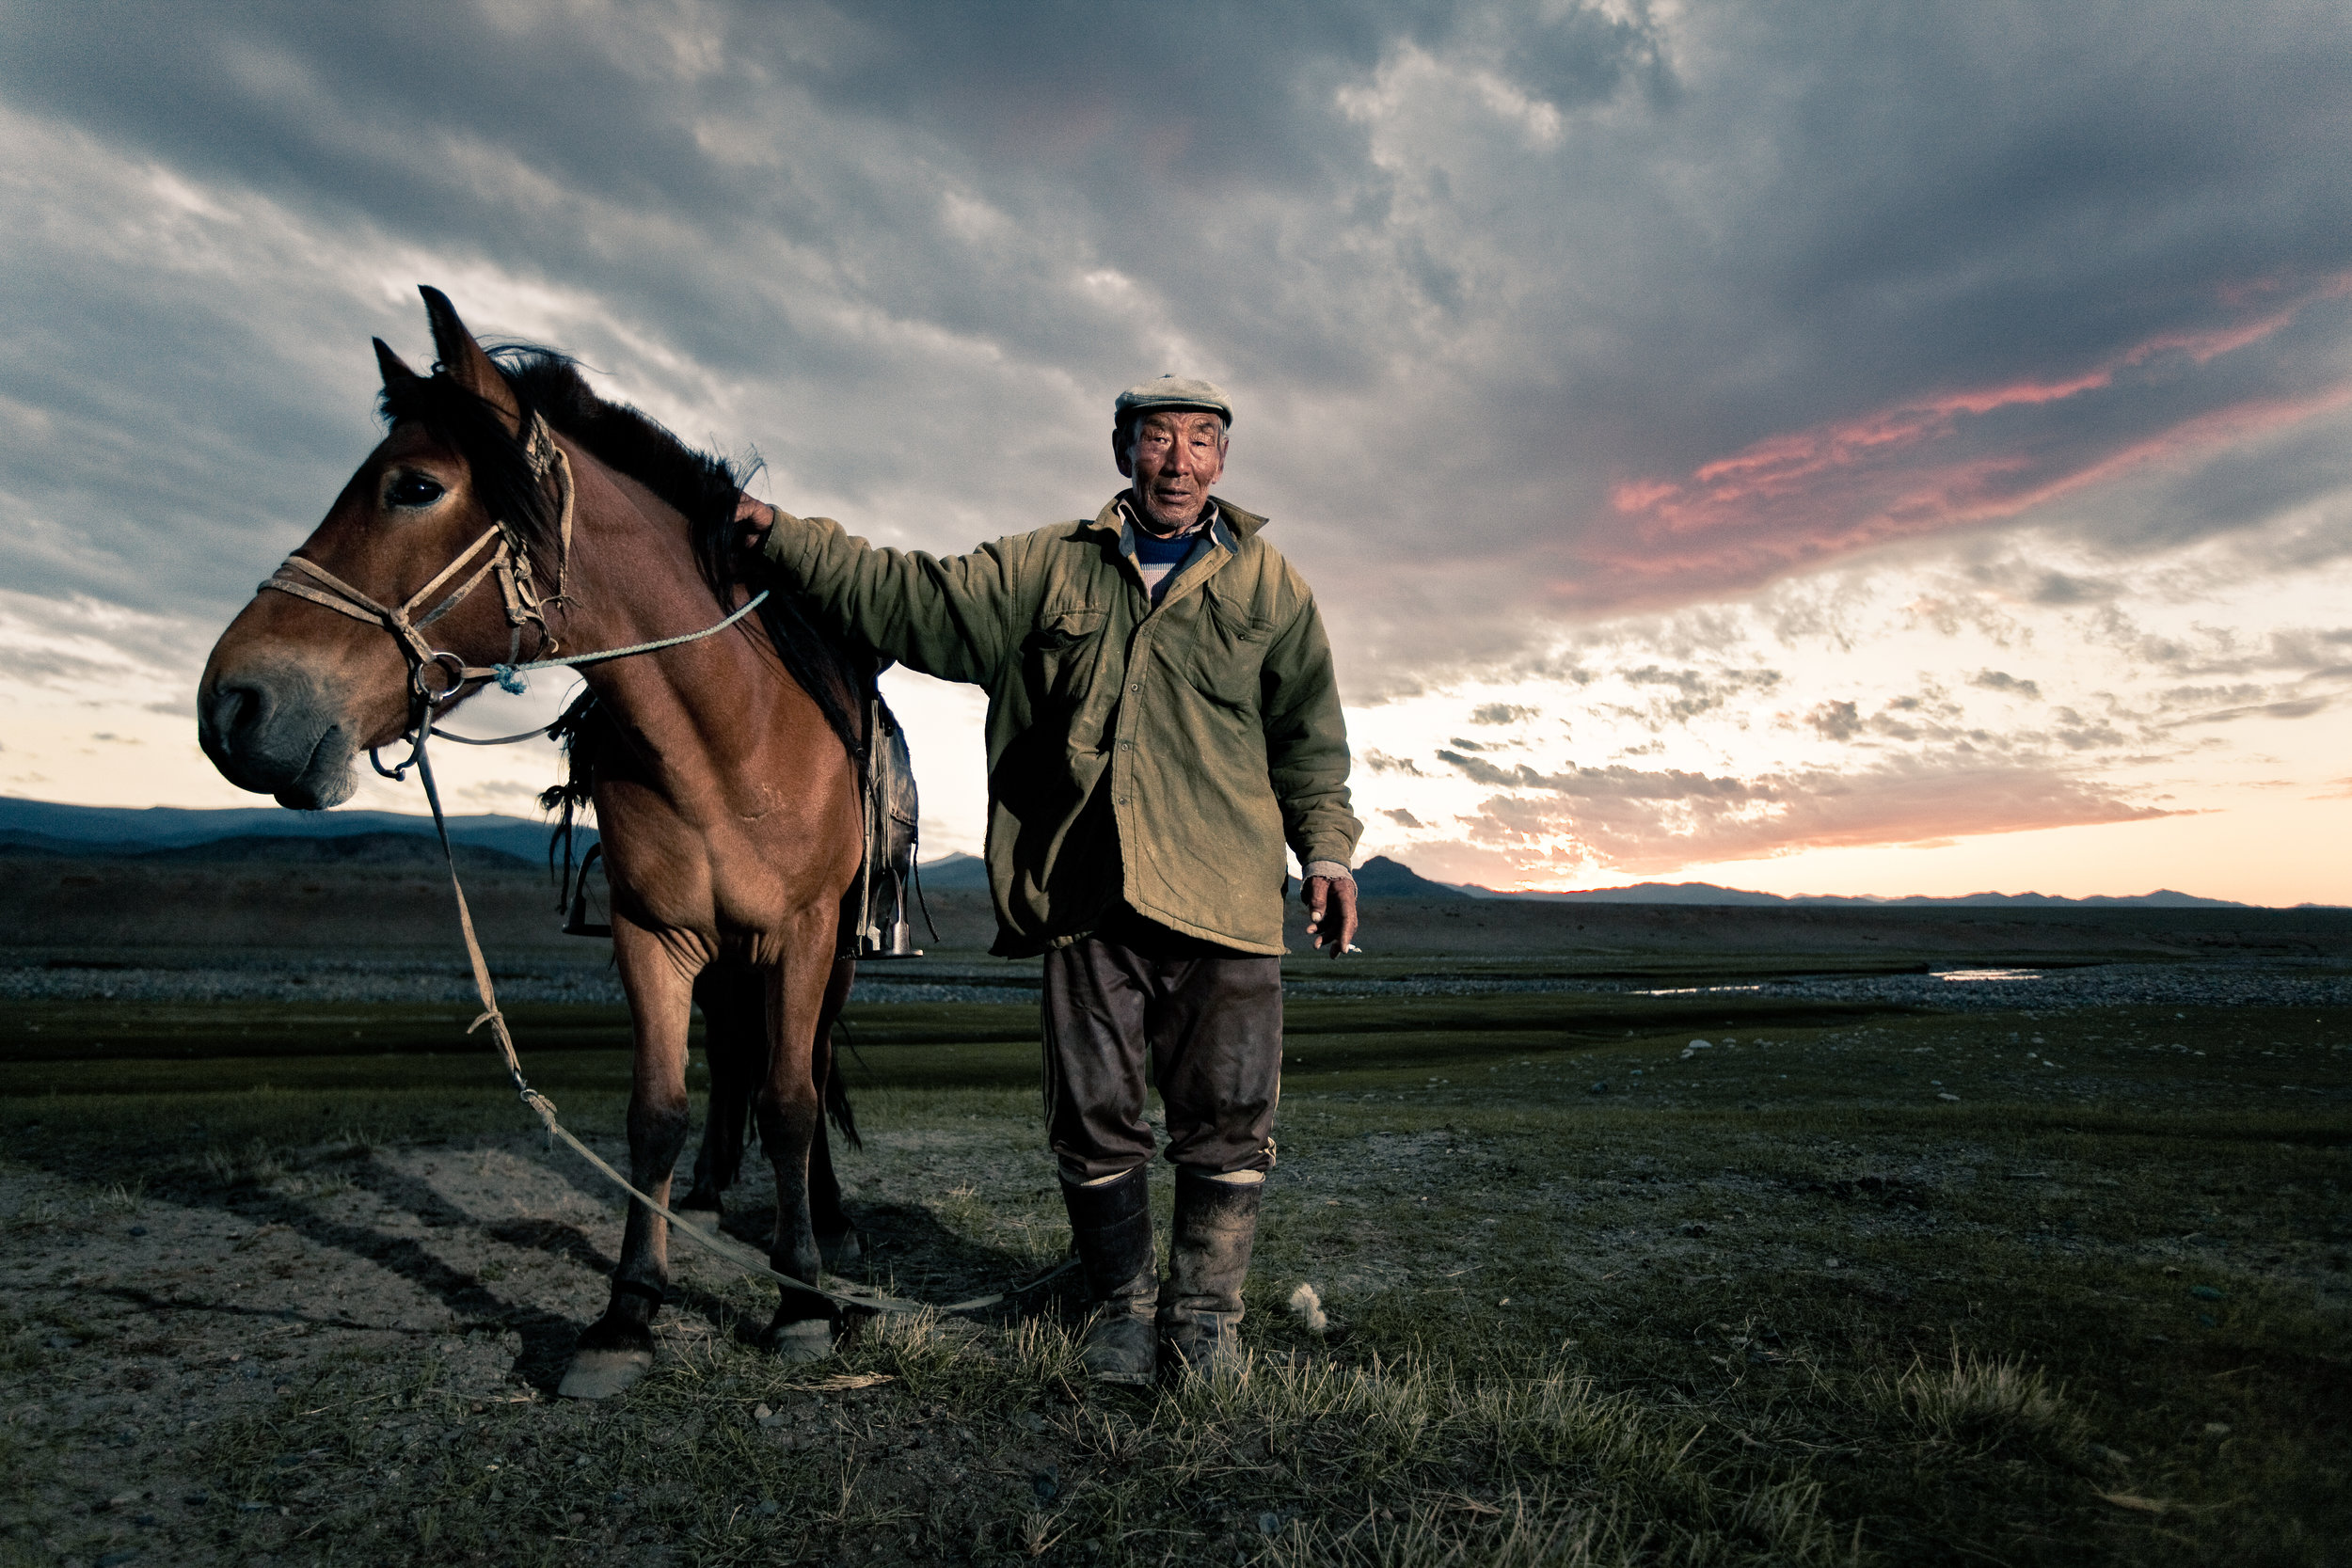 Daidaa, one of the few remaining shepherds in the country [Khovd Province, Mongolia}